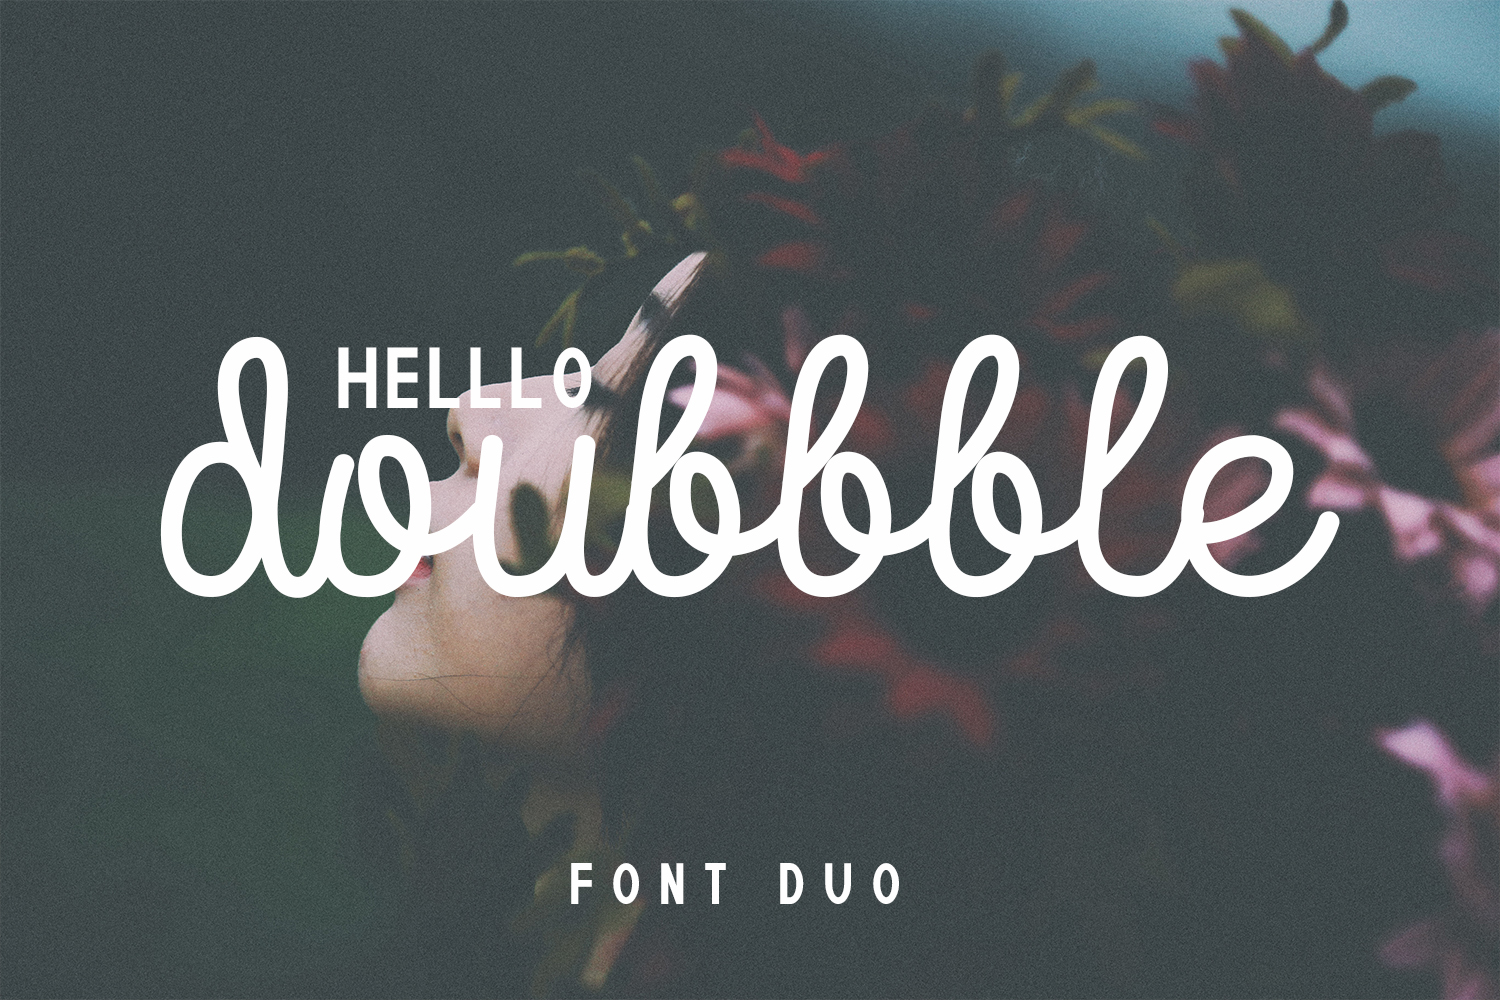 Doubbble Helllo Font Duo example image 1